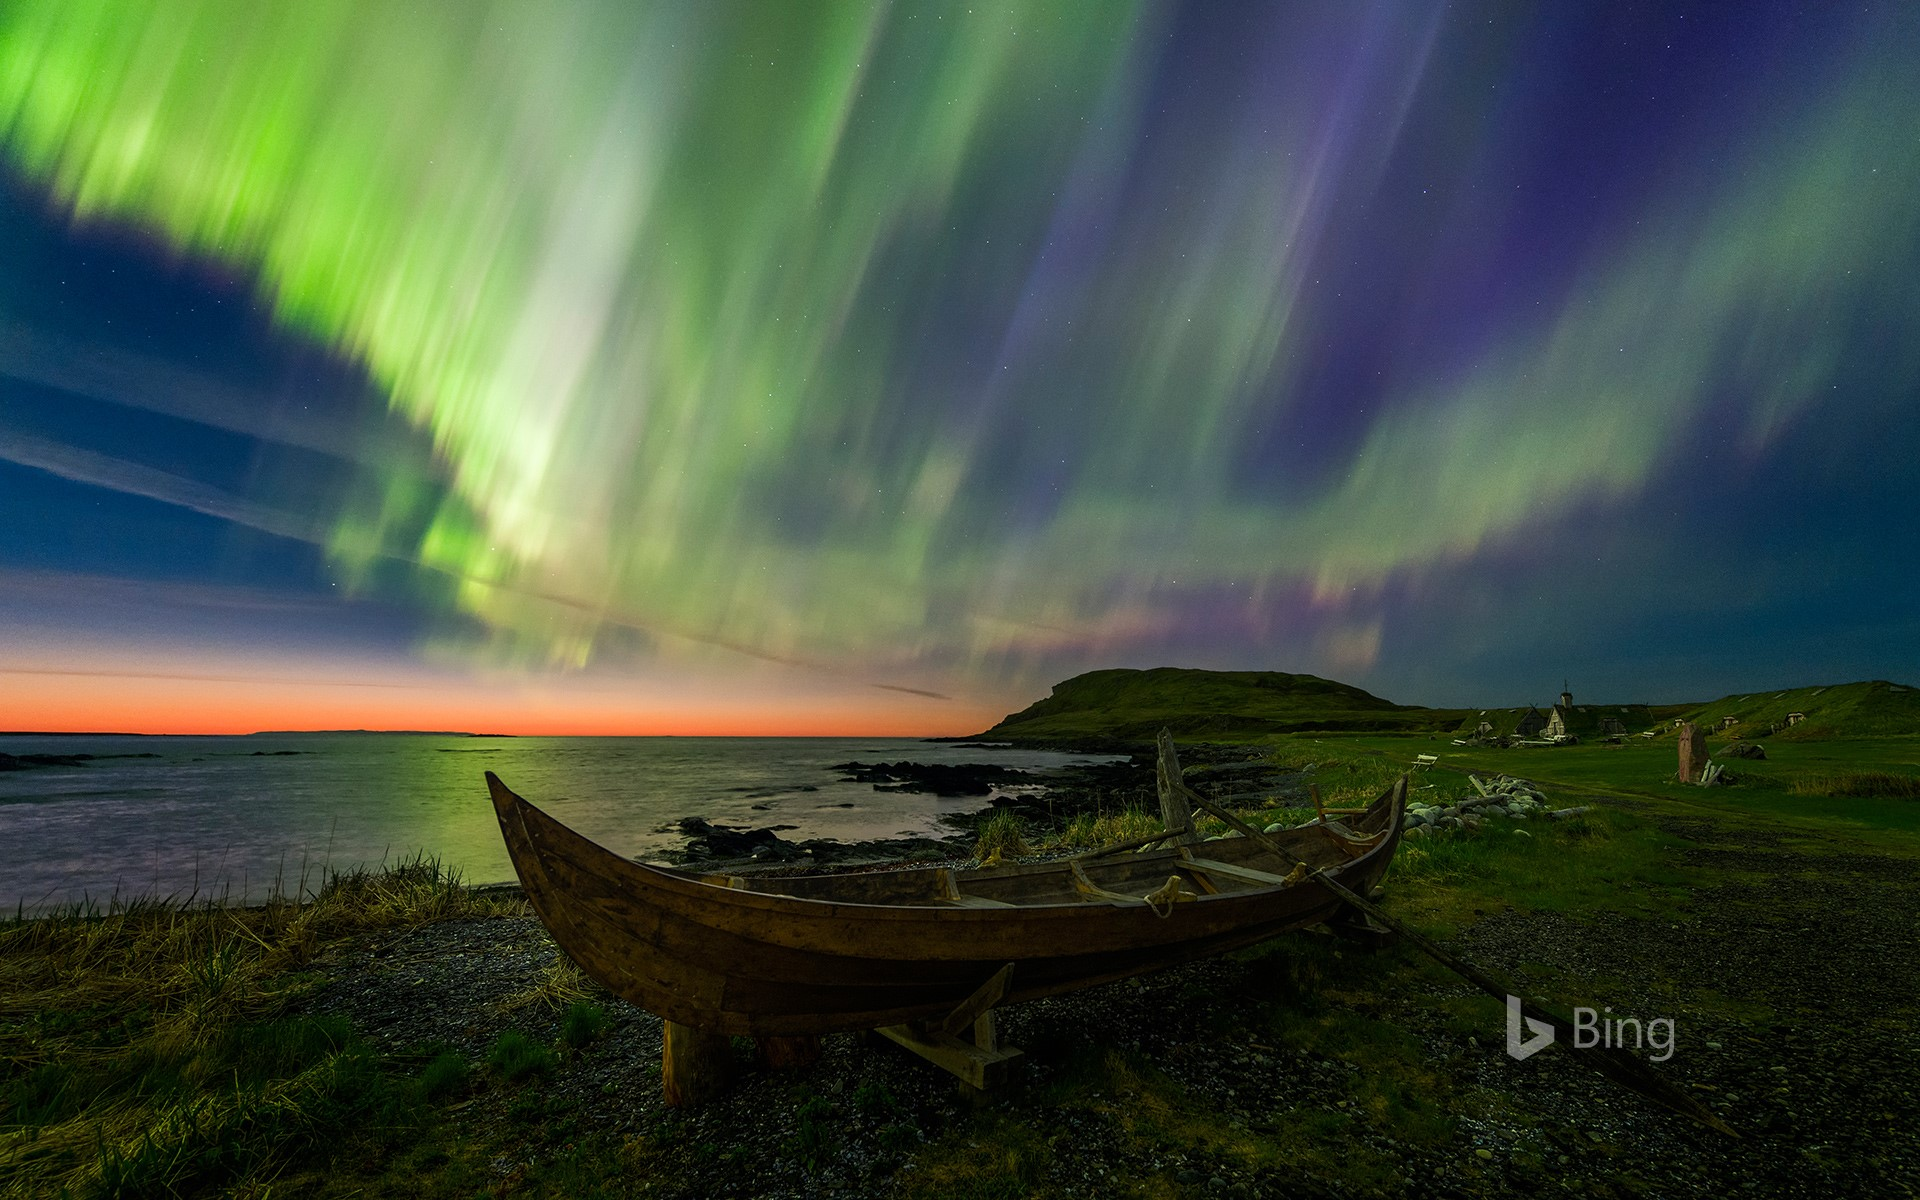 The northern lights over a rowboat in Norstead Viking Village, Newfoundland, Canada